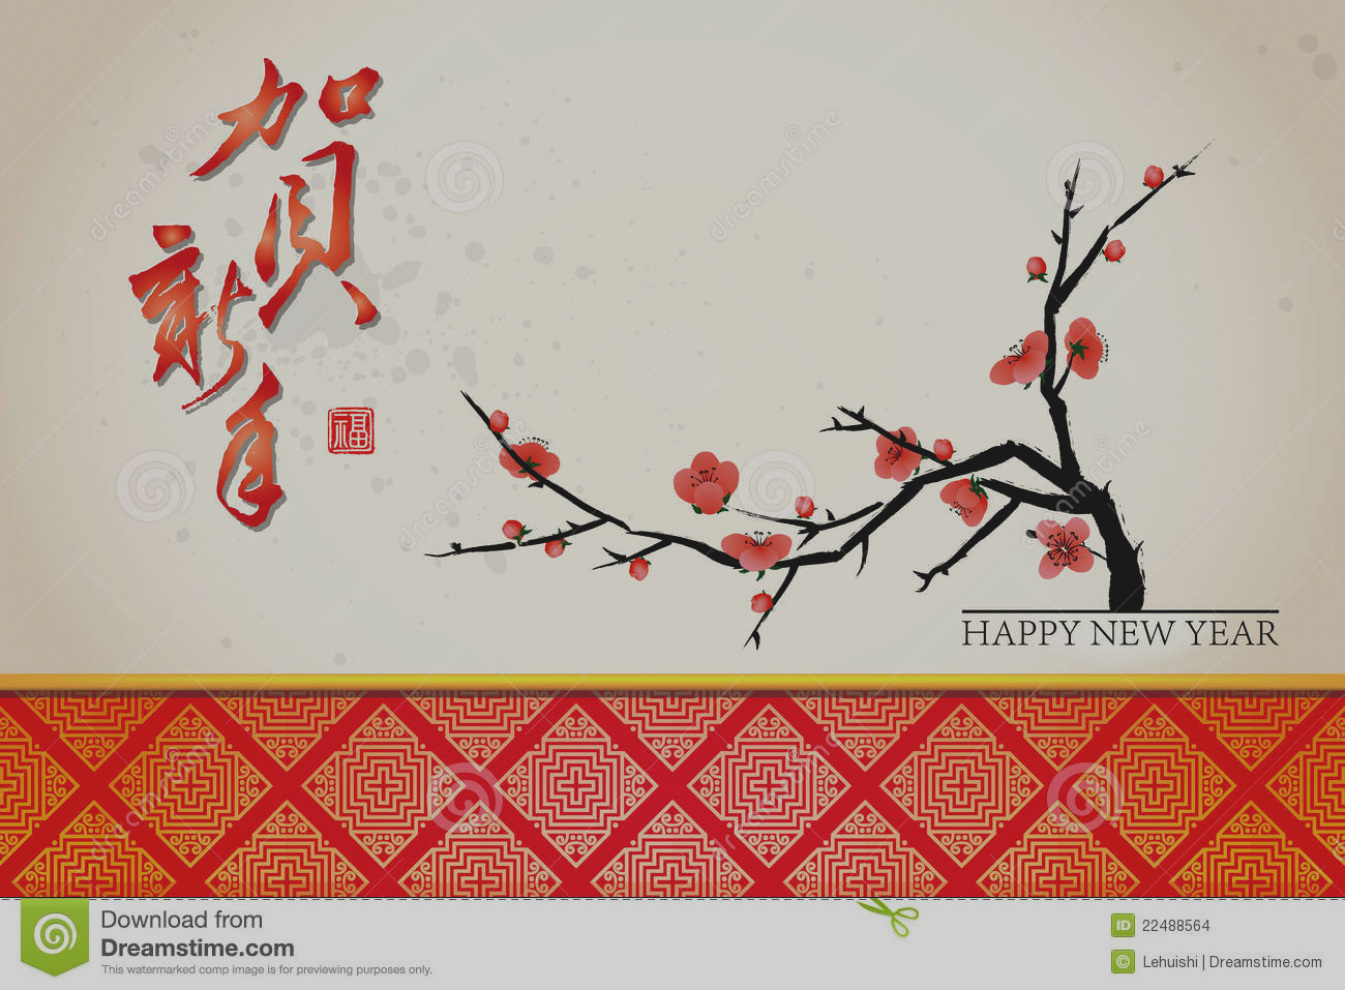 chinese birthday card images ; collection-chinese-birthday-card-invitation-design-ideas-greeting-cards-rectangle